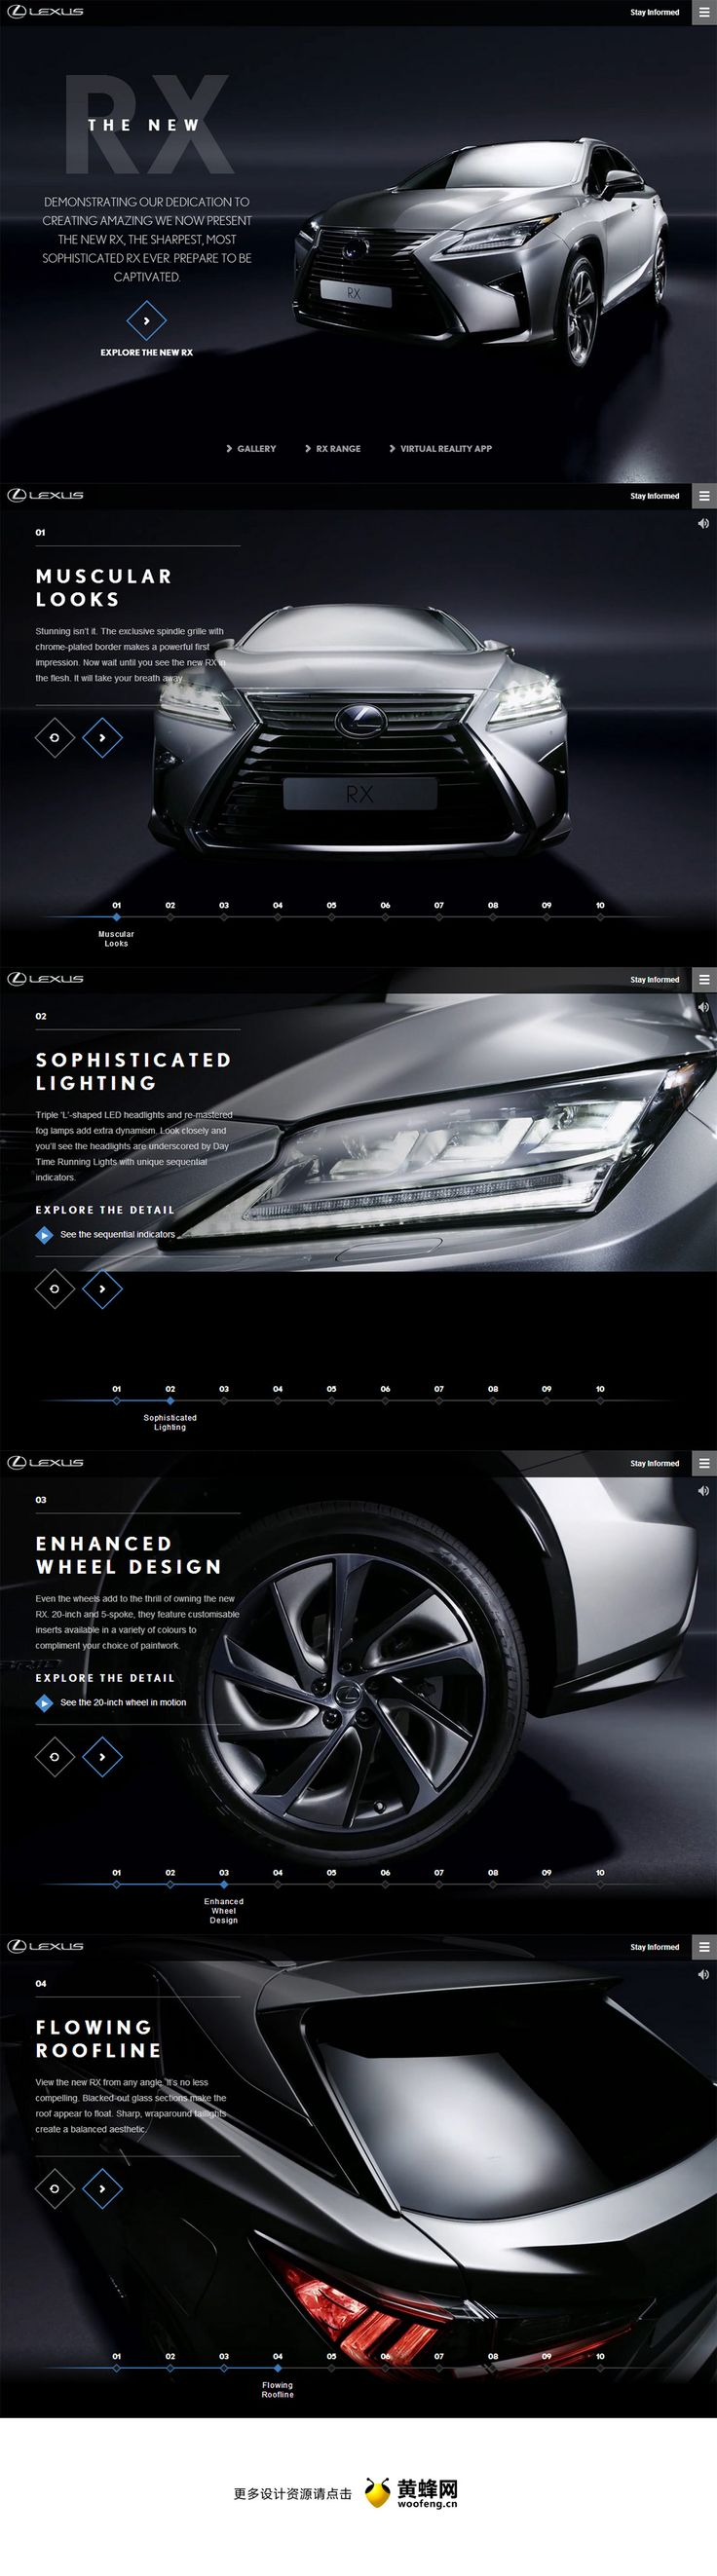 115 best Car websites images on Pinterest | Website designs, Design ...